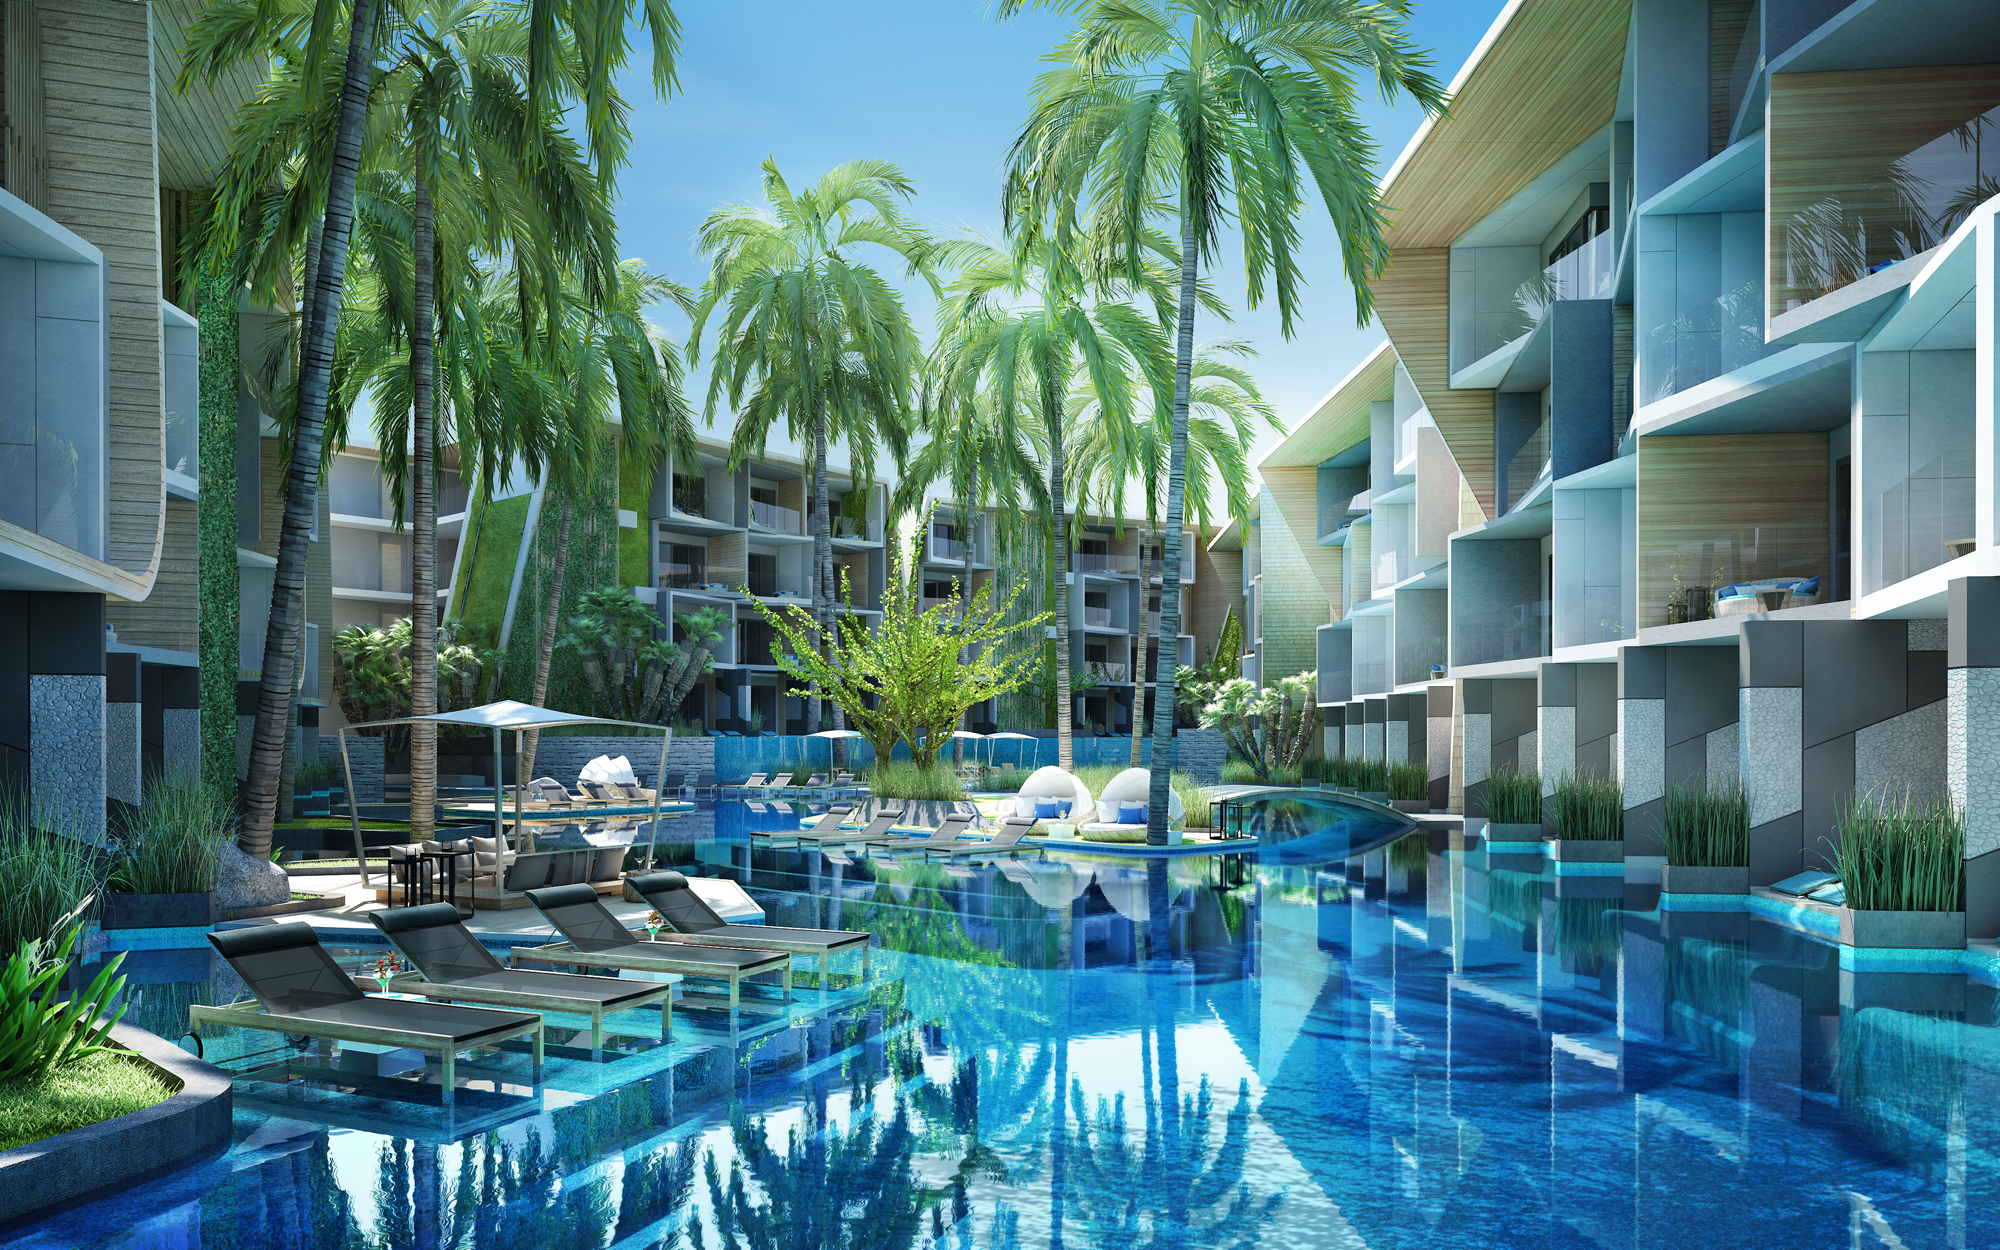 Investment Property in Naiharn managed by World-Class hotel brand